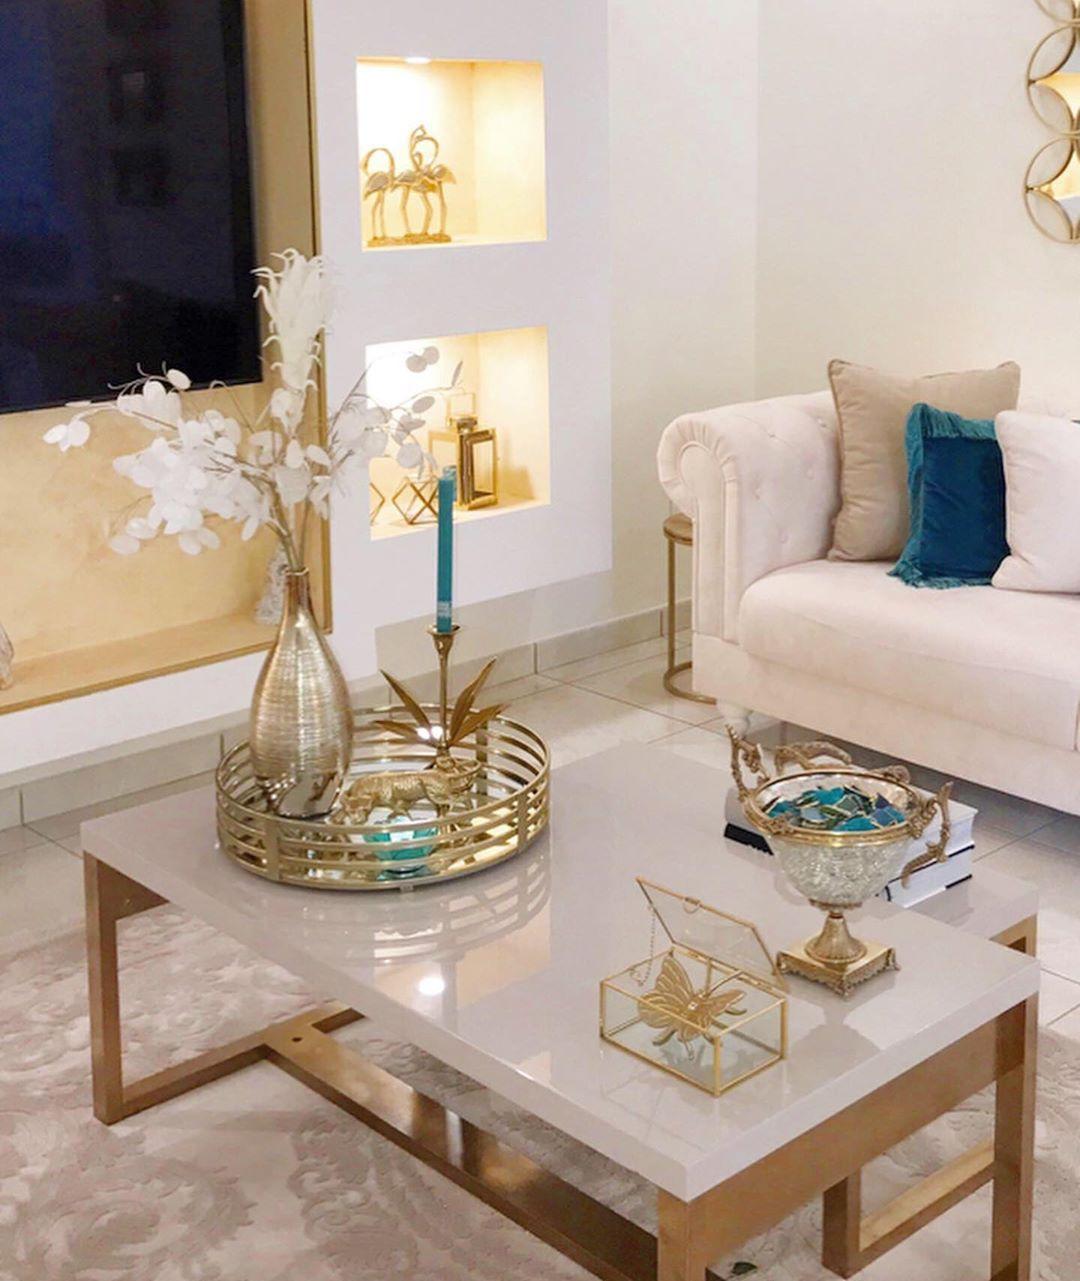 My Home Decor Design On Instagram Hello Insta Have A Nice Week You All I Made T Table Decor Living Room Gold Living Room Decor Blue Living Room Decor [ 1281 x 1080 Pixel ]